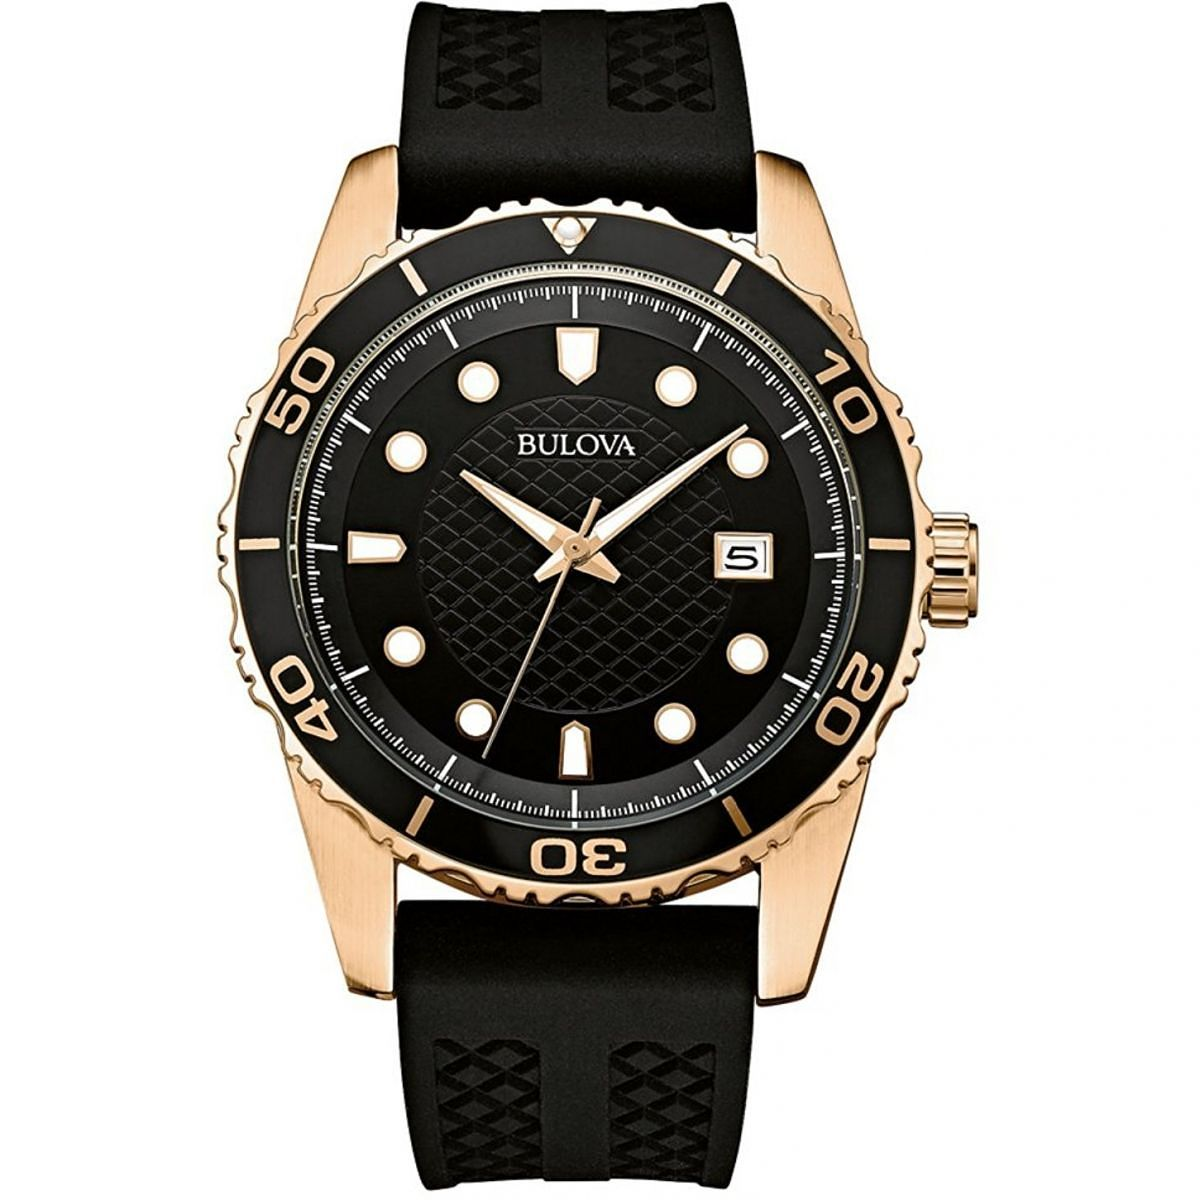 Bulova Men's Classic Sports Black Silicone Strap Watch - Product number 9795790